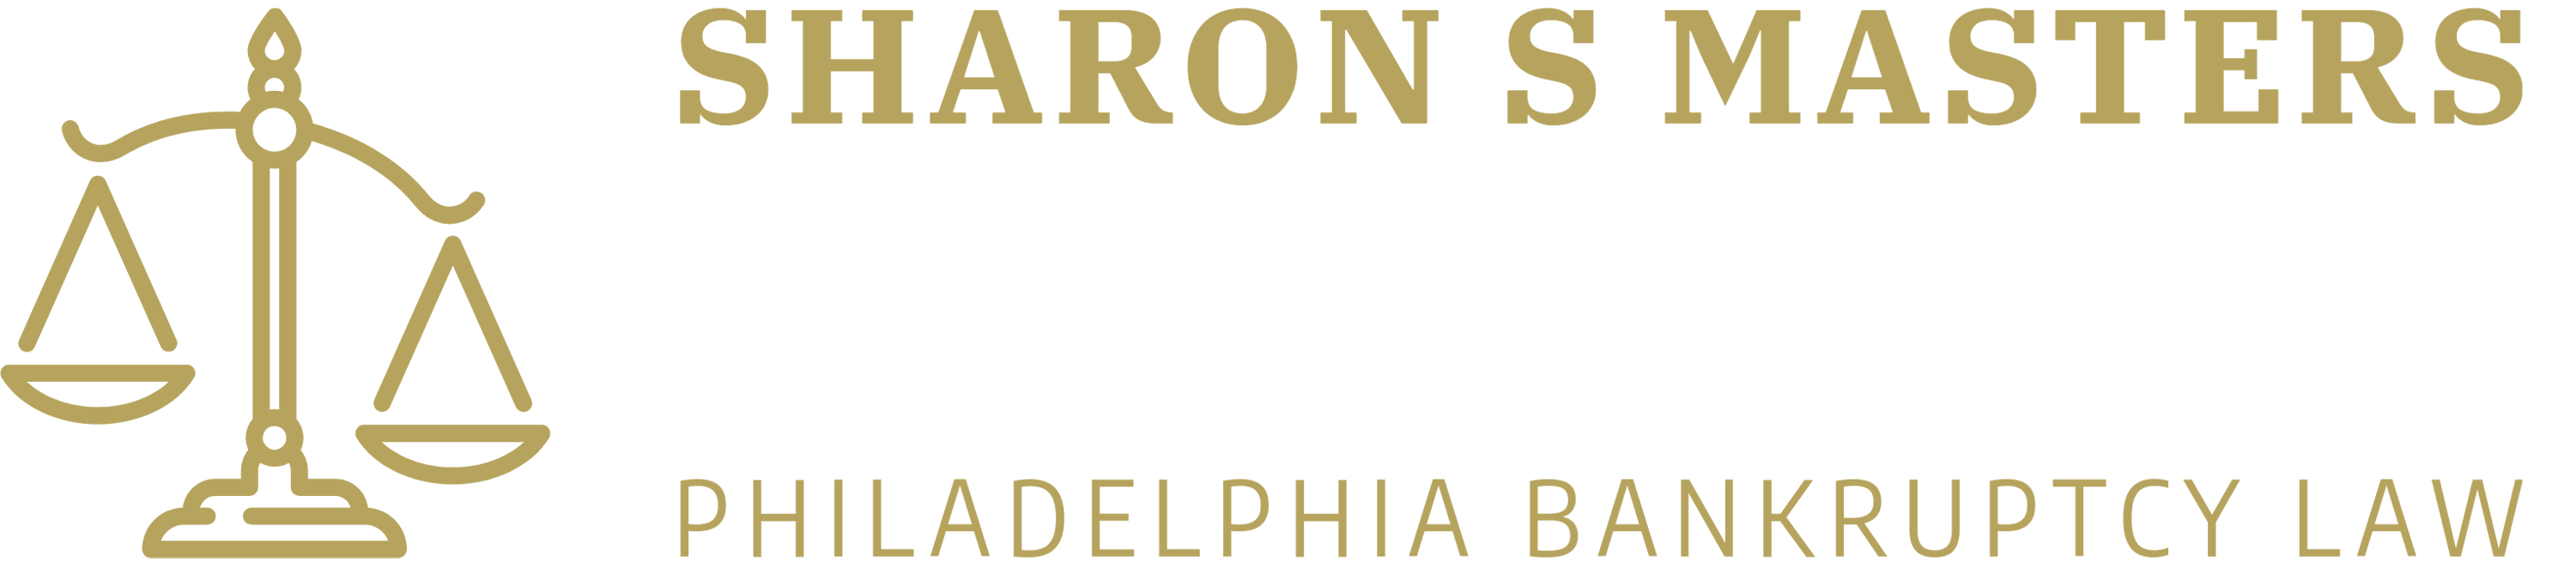 The Law Office of Sharon S. Masters